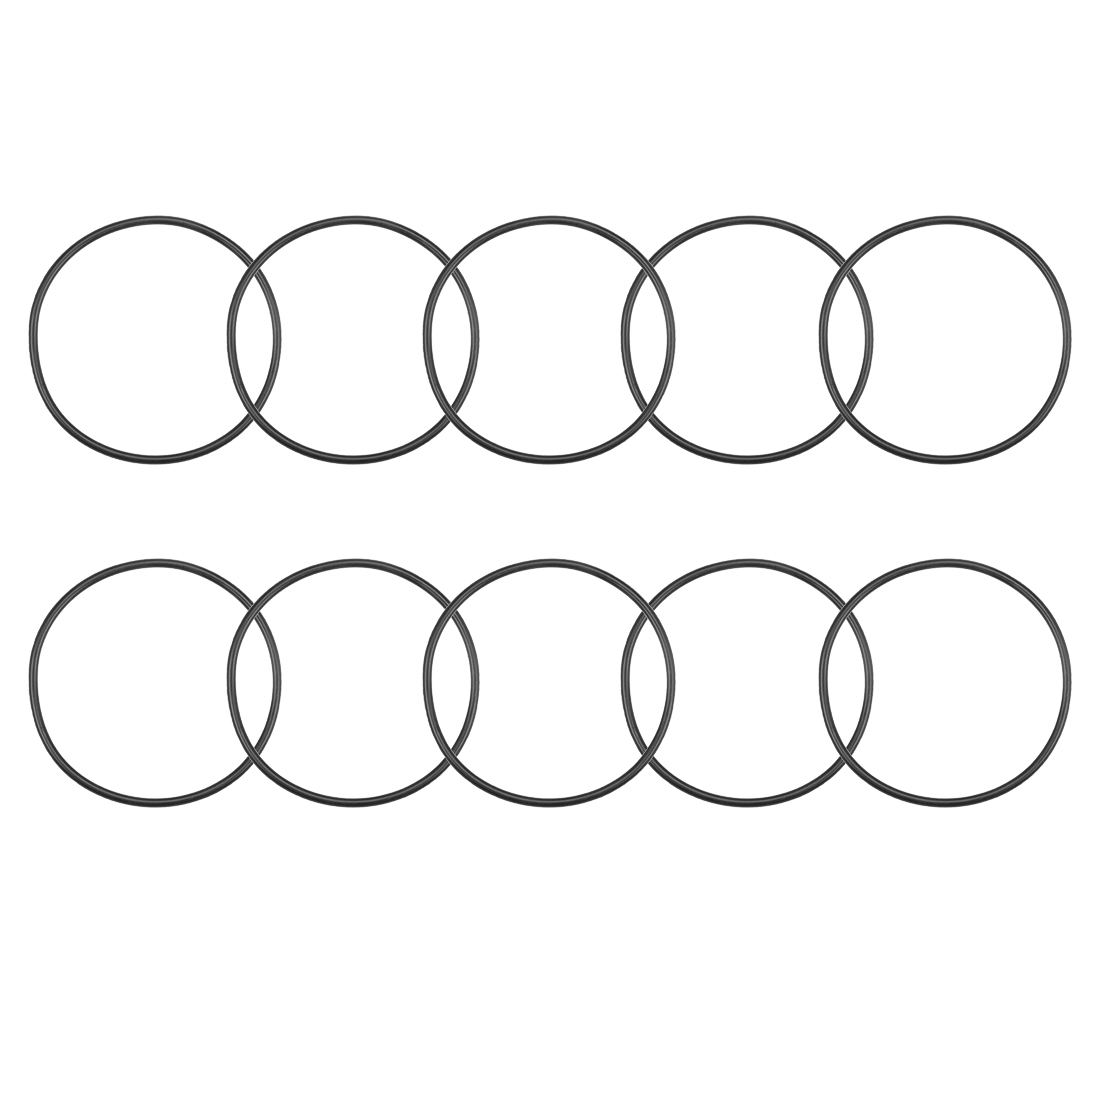 O-Rings Nitrile Rubber 62mm x 67.3mm x 2.65mm Round Seal Gasket 10 Pcs